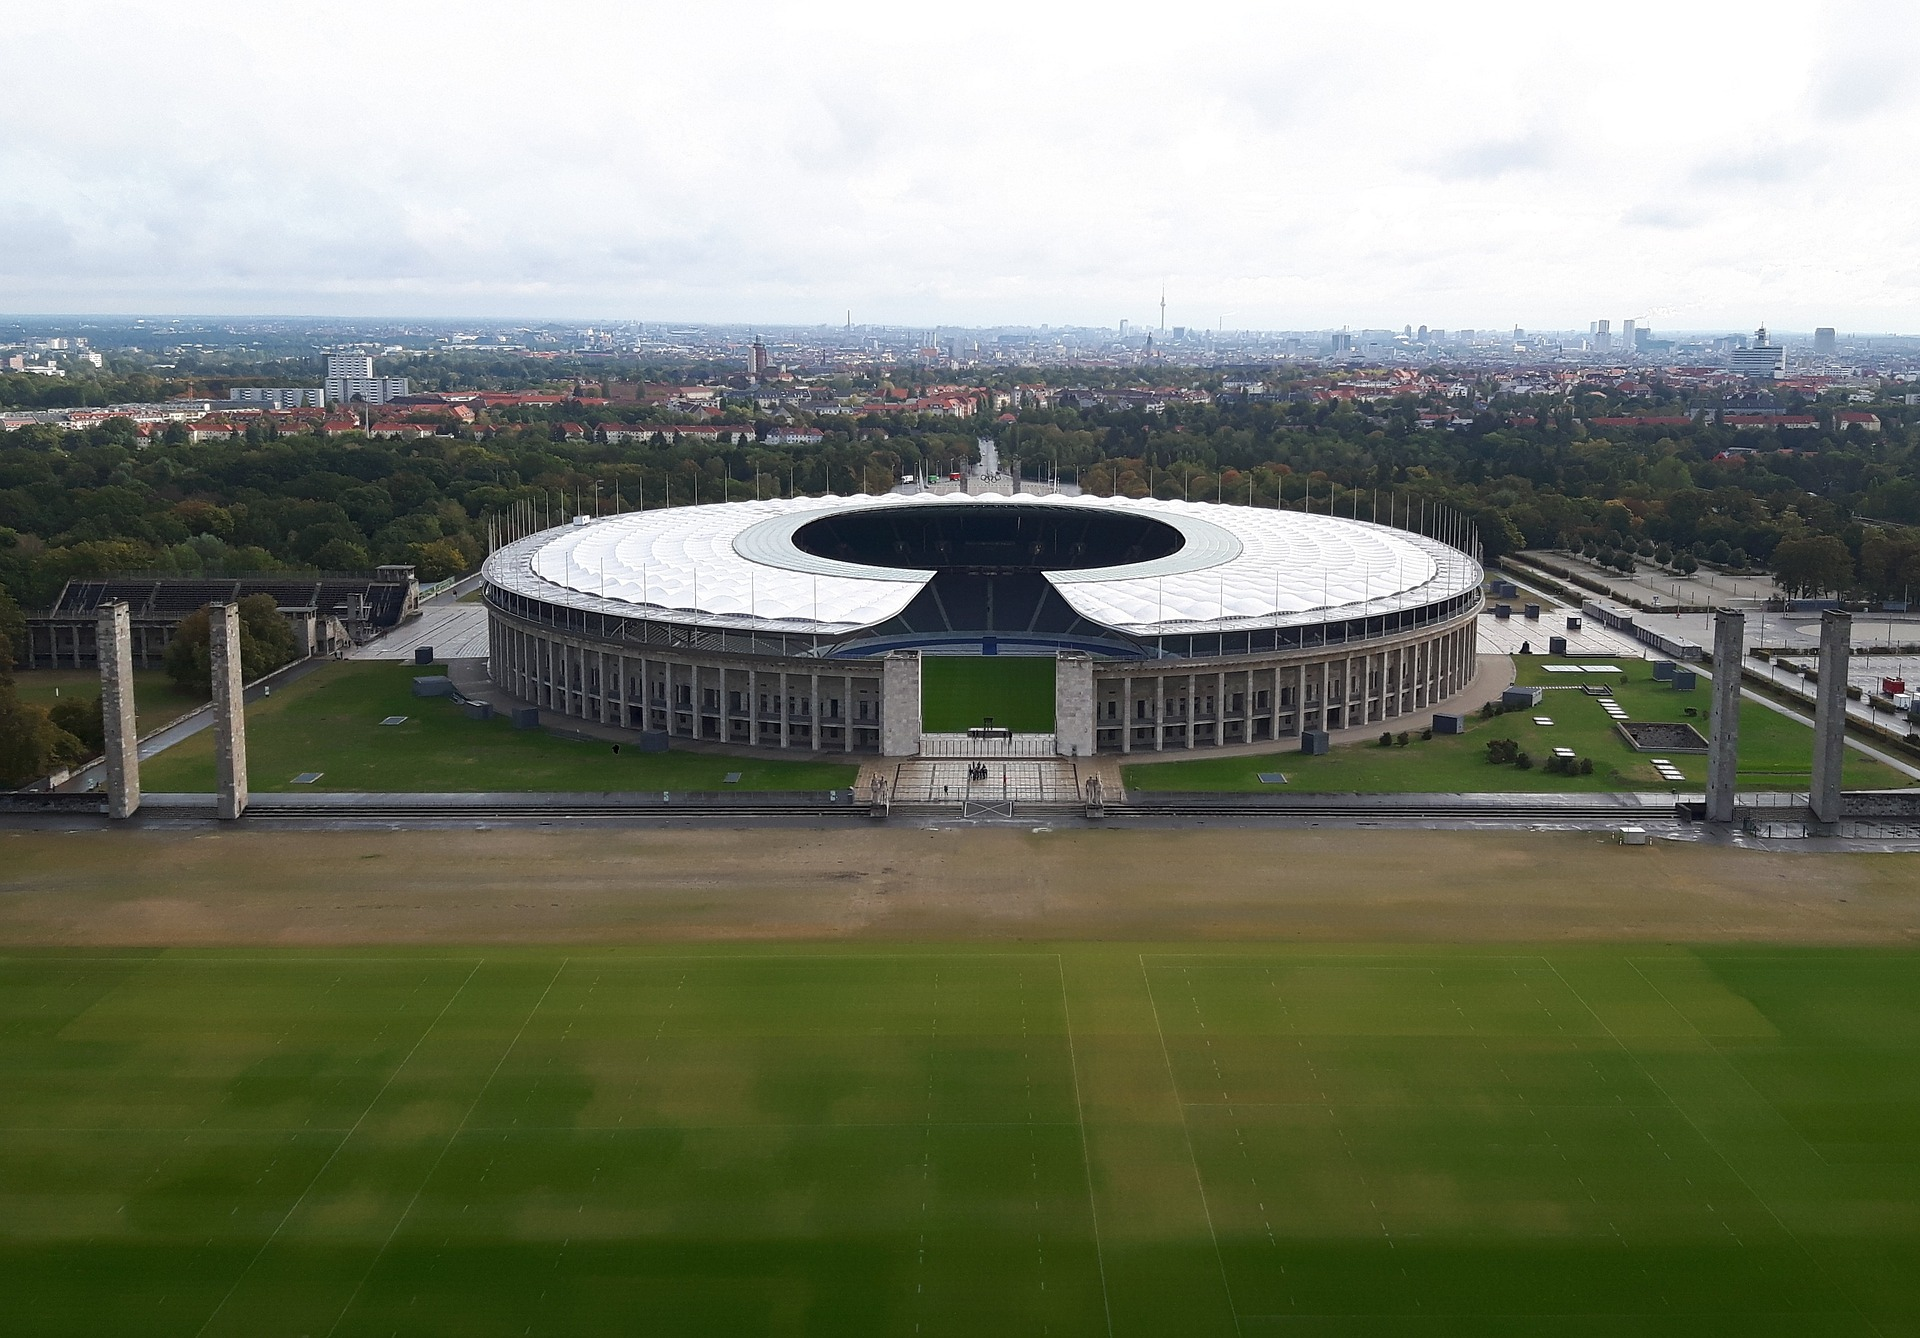 Olympia Stadion in Berlin